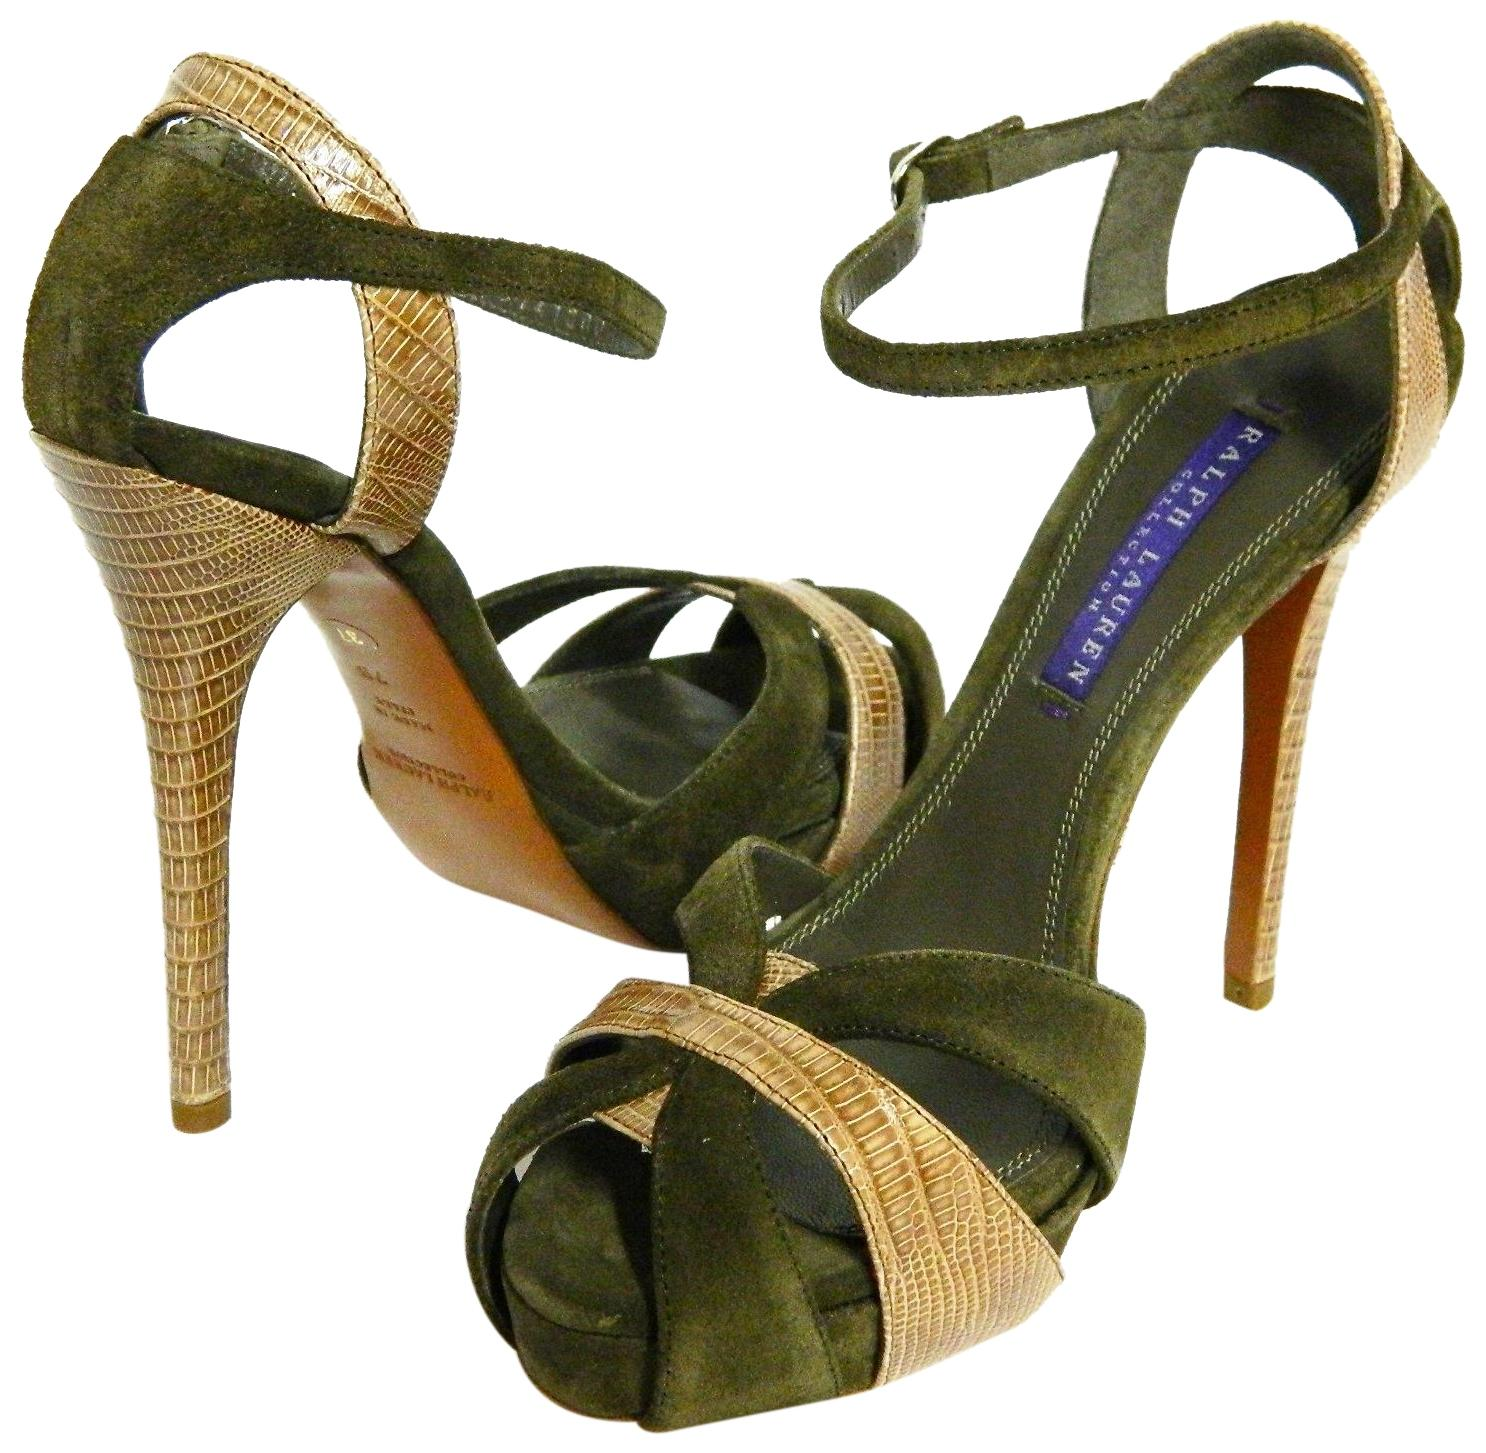 Ralph Lauren Collection Calf Suede/Lizard Jeanette Suede/Lizard Sandals Size US 7 Regular (M, B)